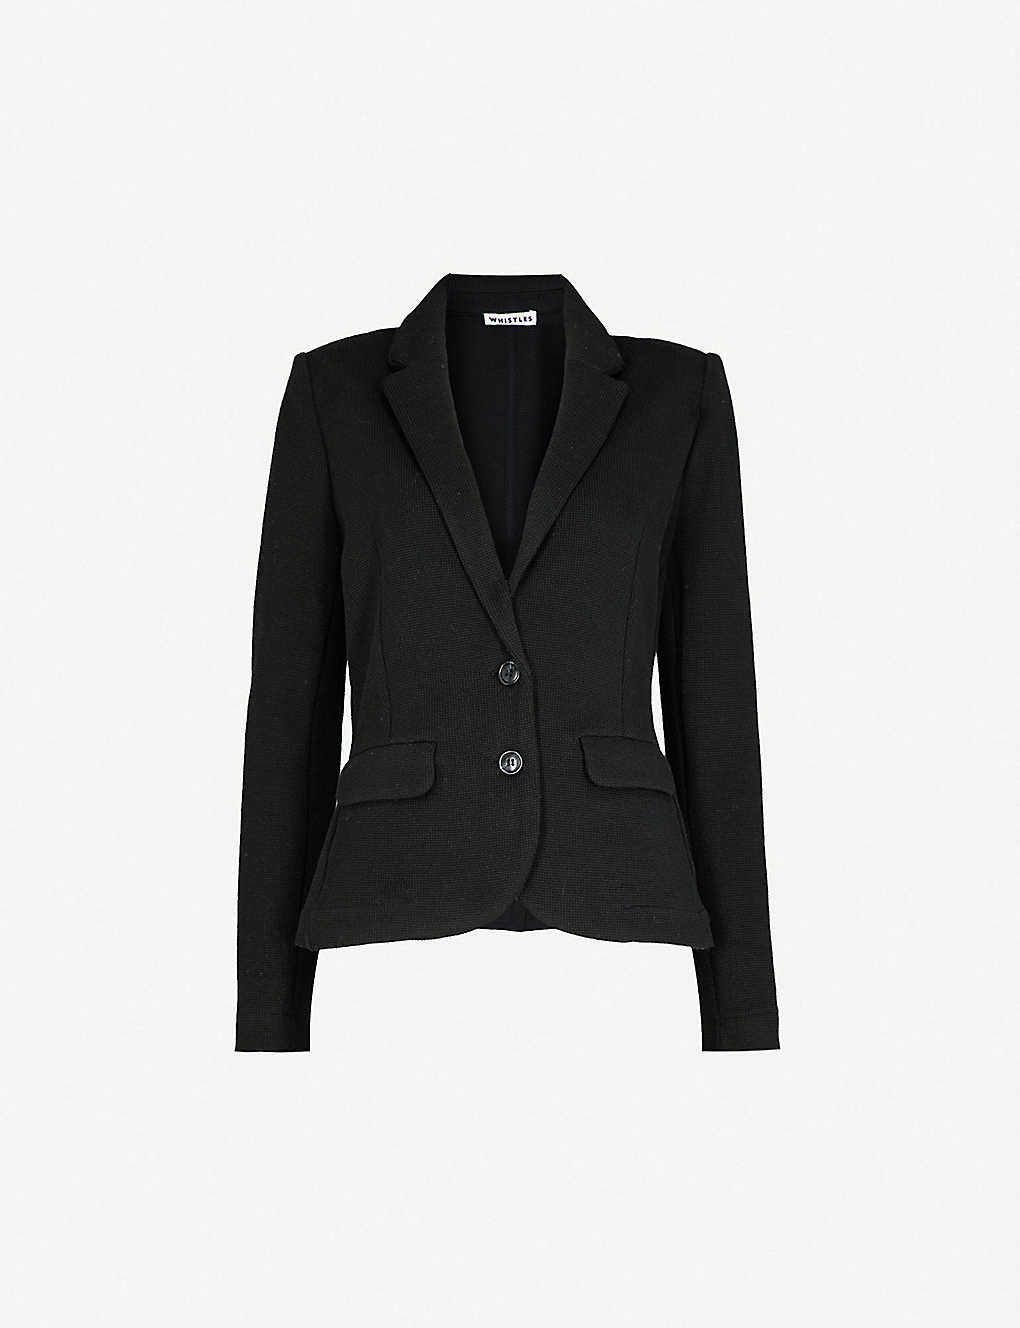 WHISTLES: Cotton-jersey blazer